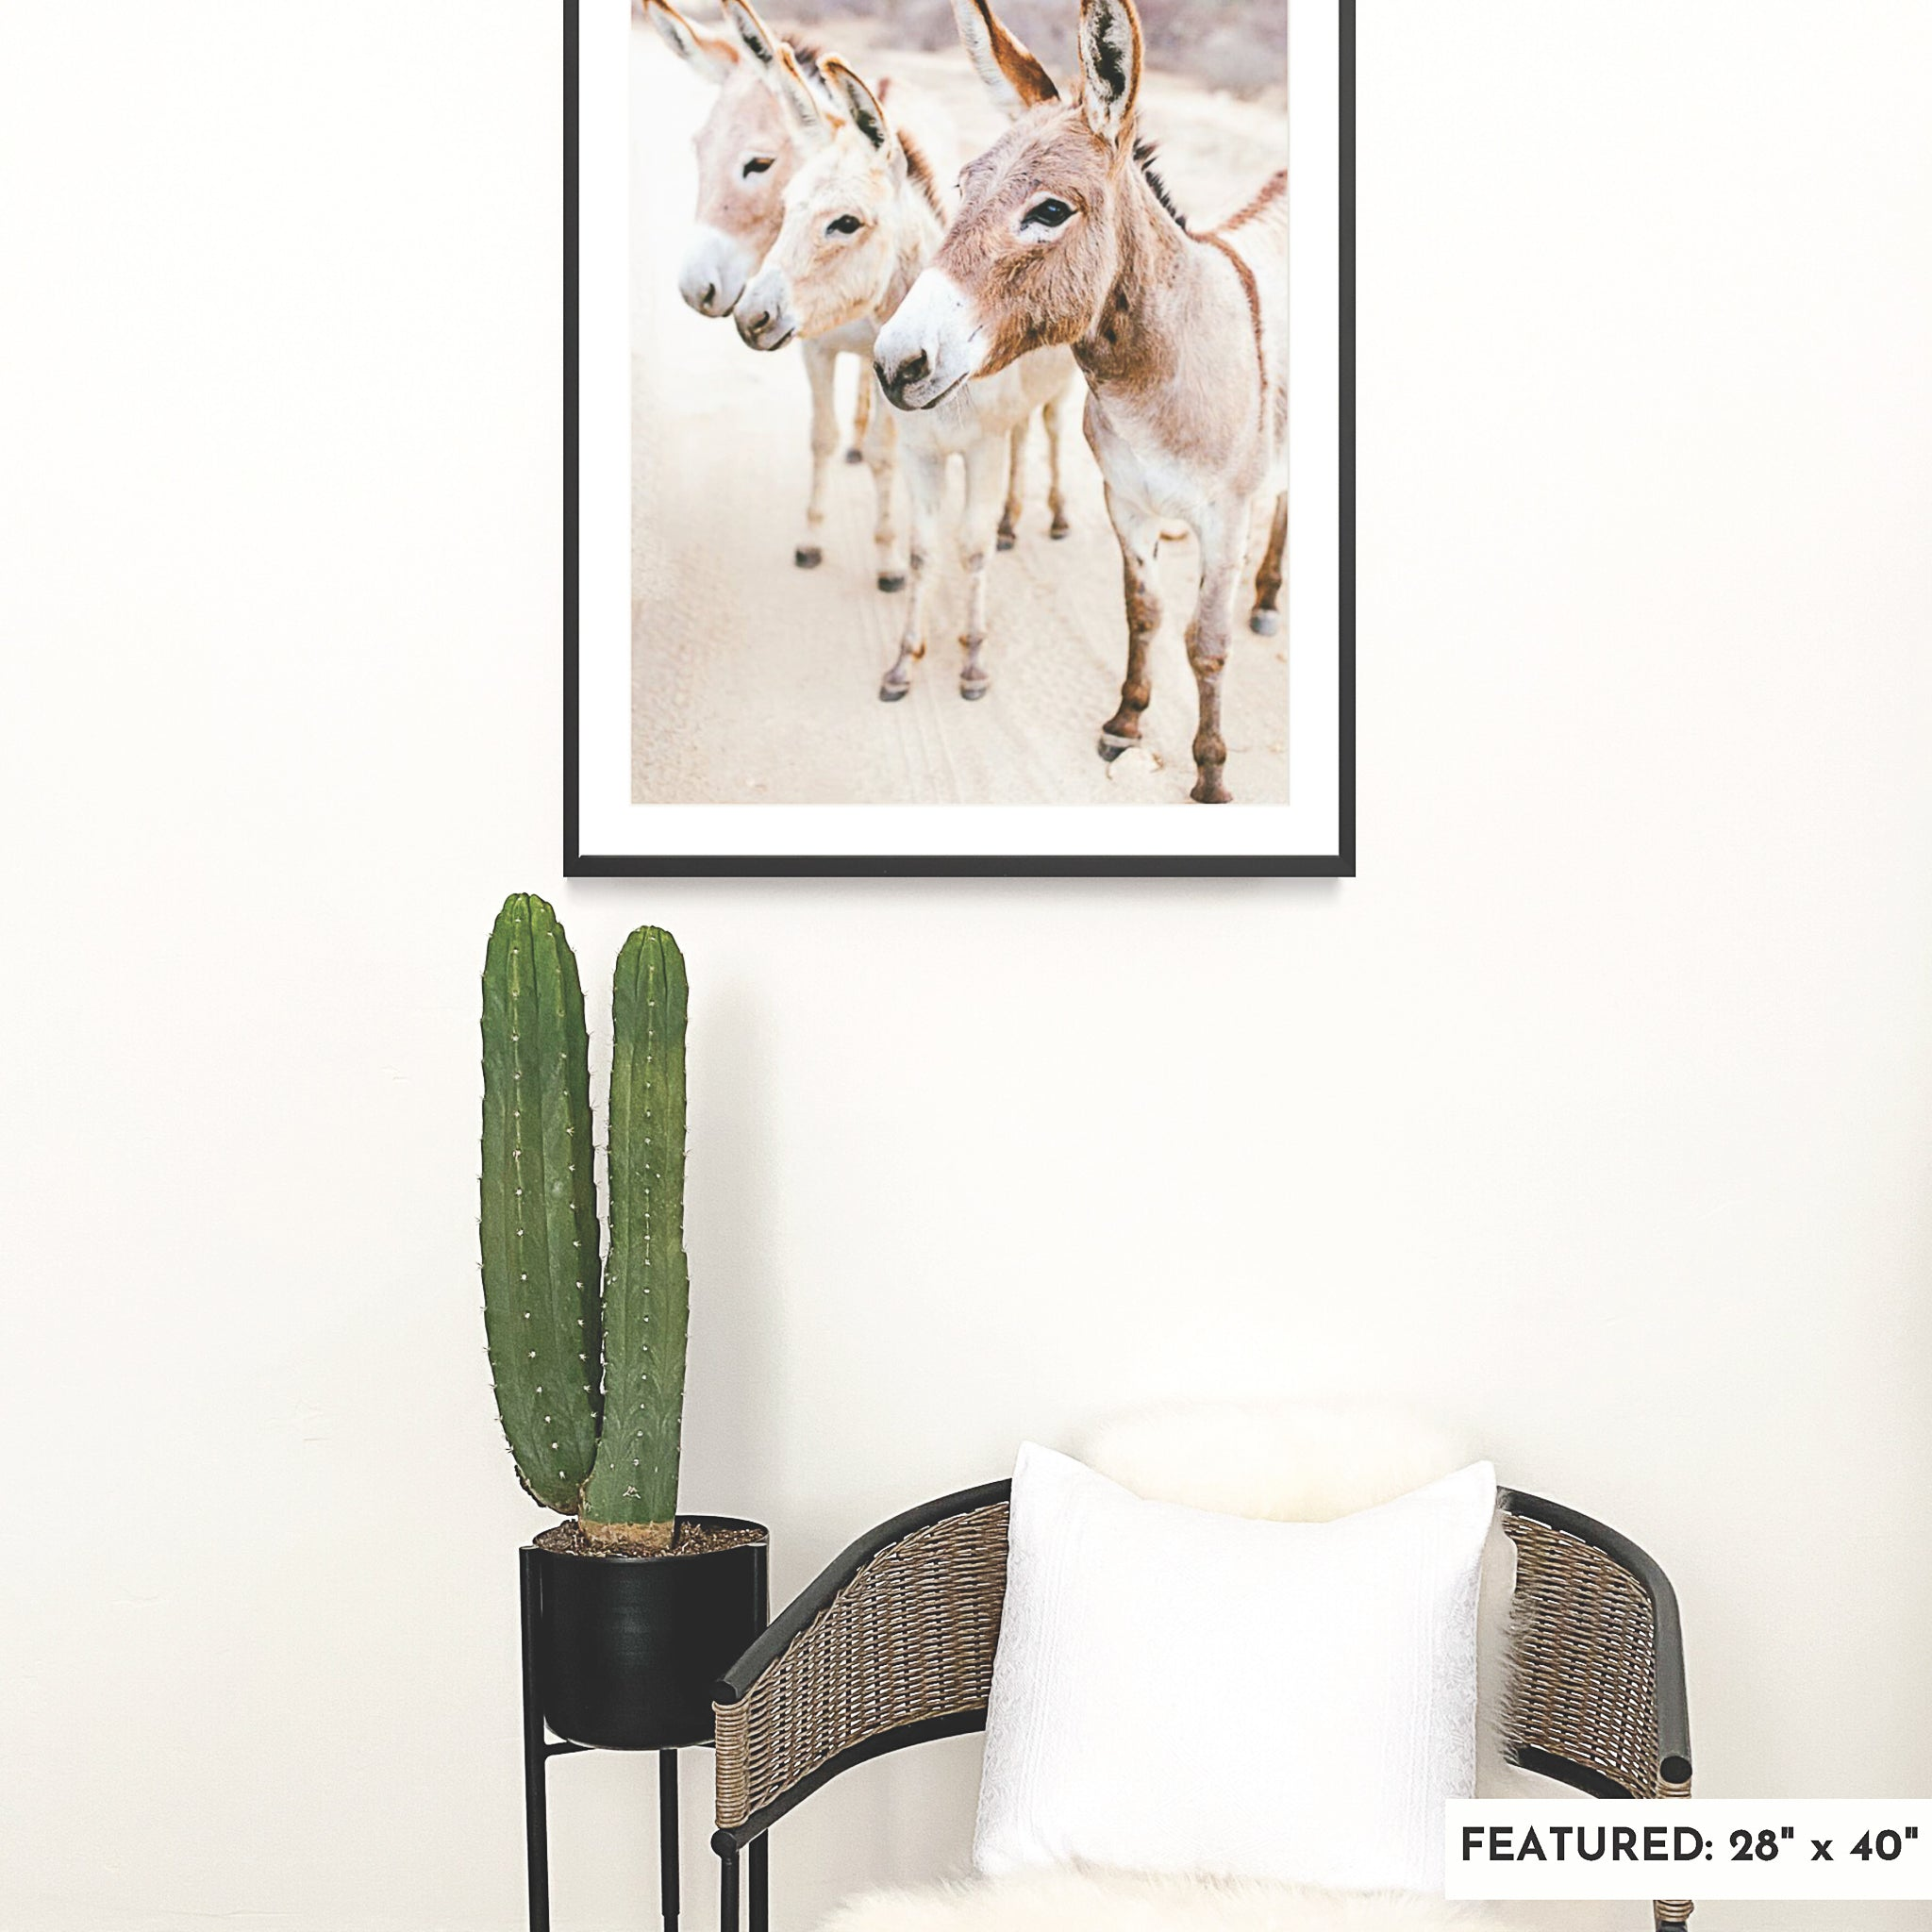 A large, framed fine art print featuring three burros in the Baja desert is on a white wall with a large cactus in a black planter and a rattan chair.